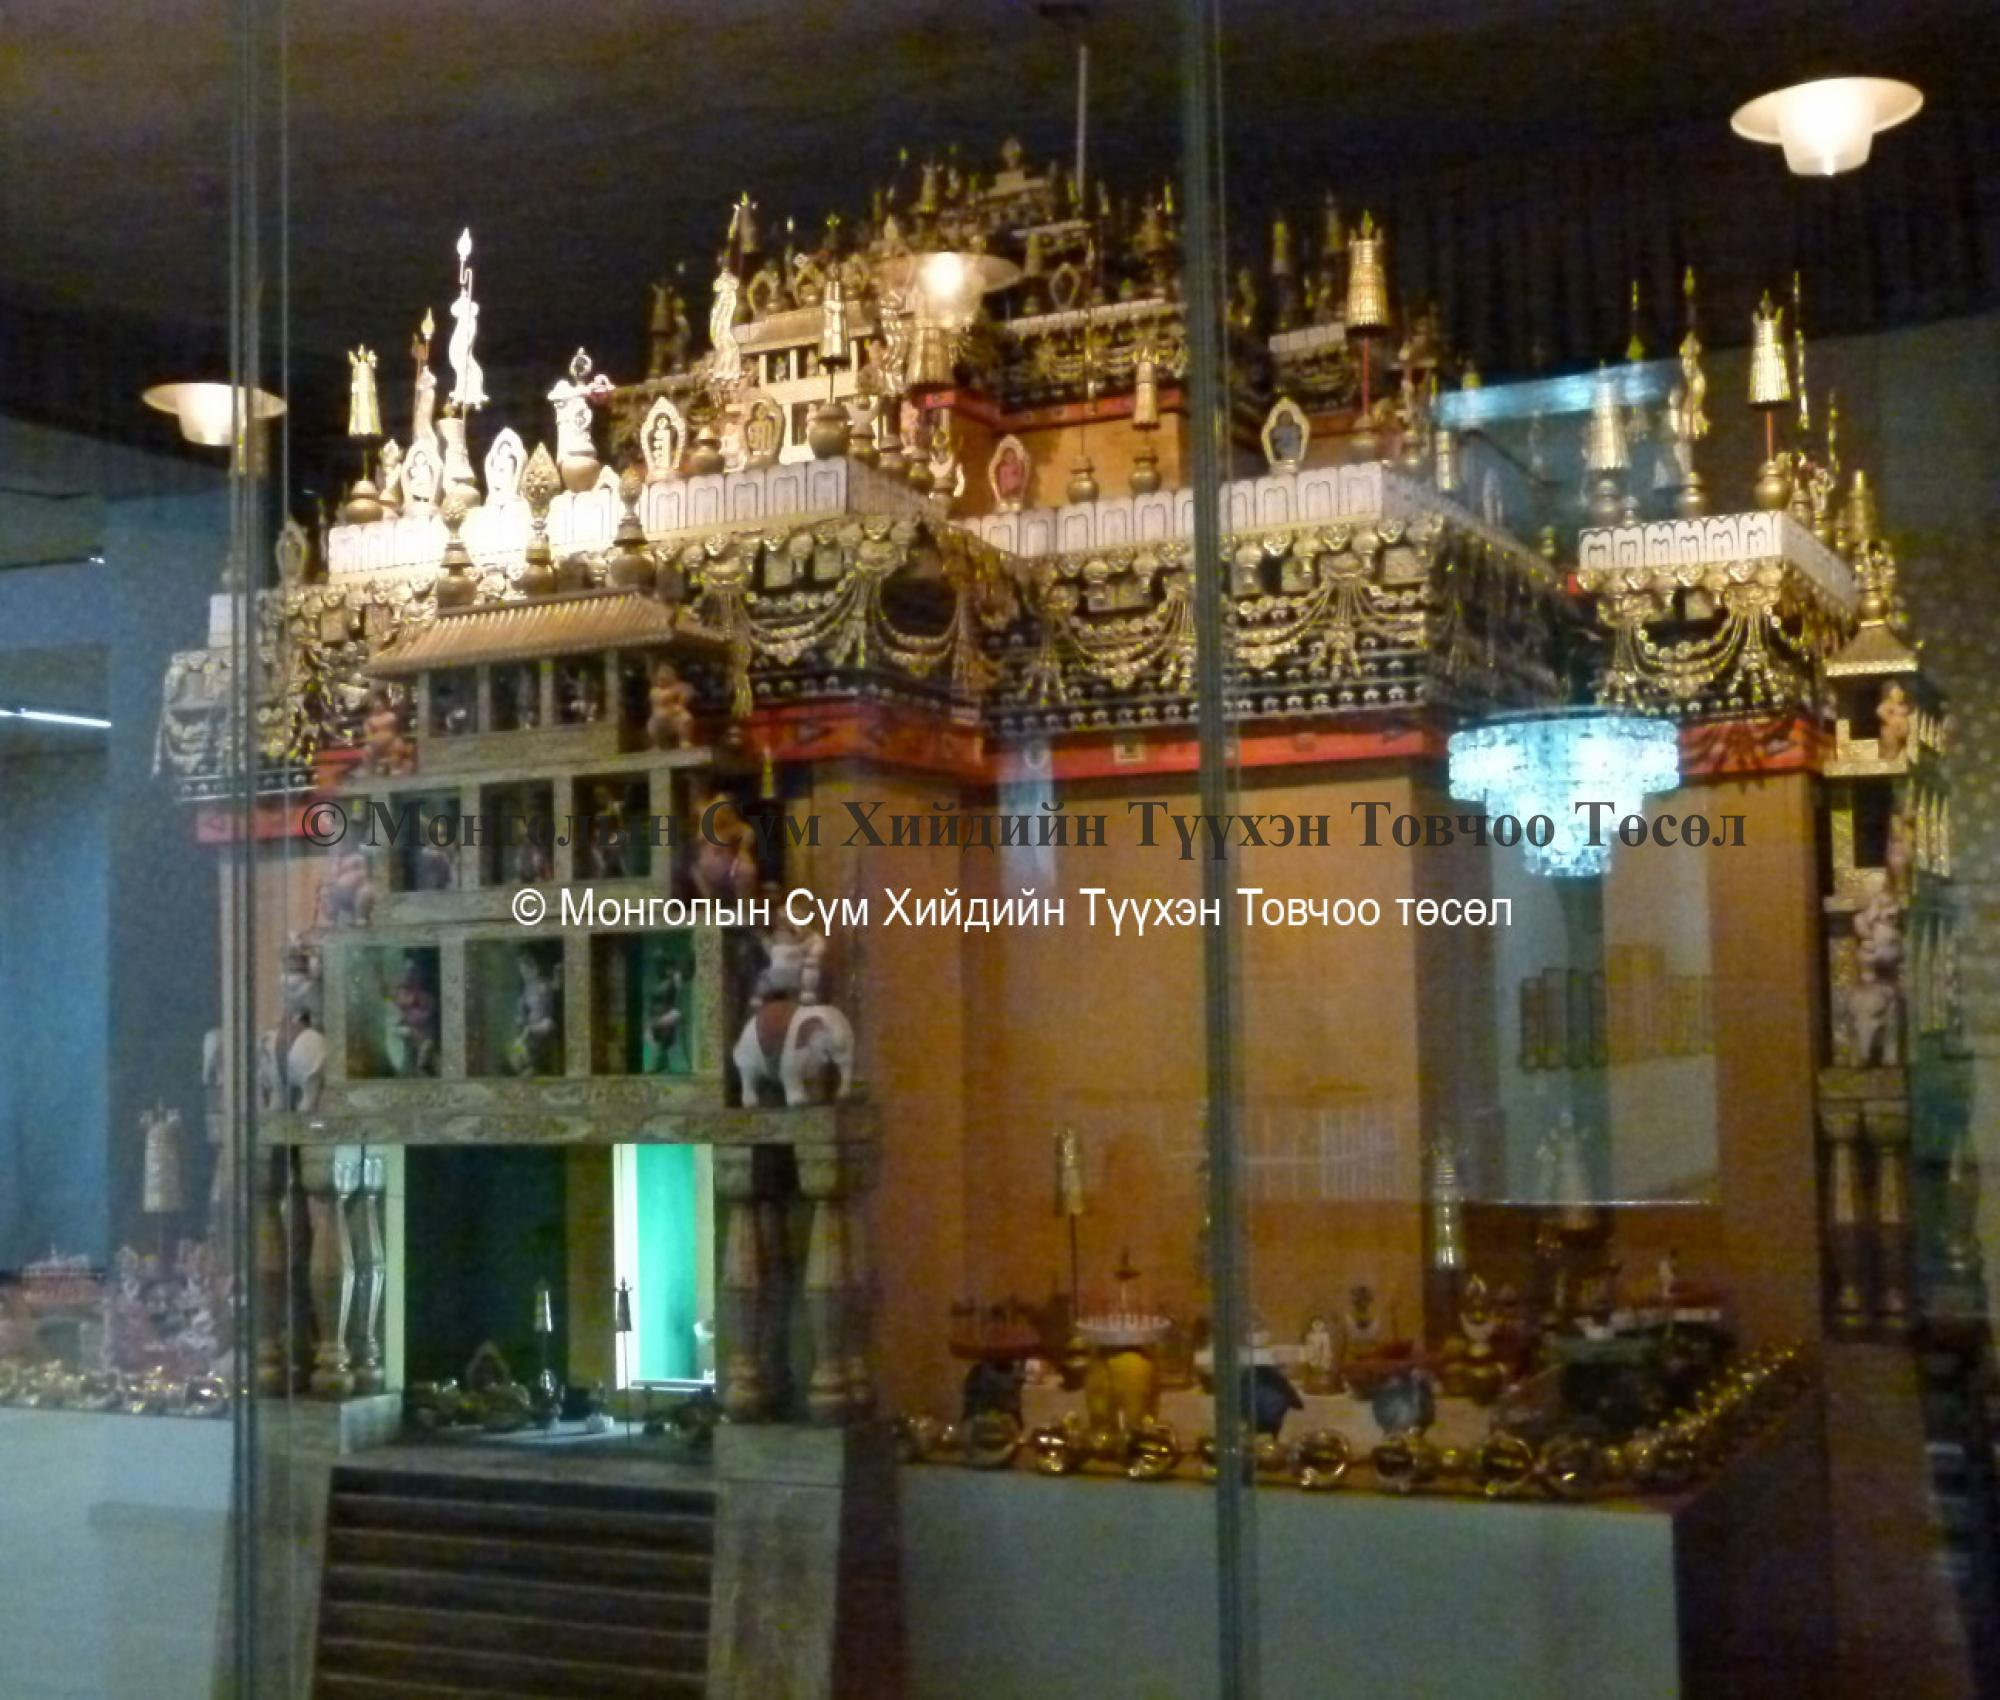 Düinkhoriin loilon, preserved now in Zanabazar Mus